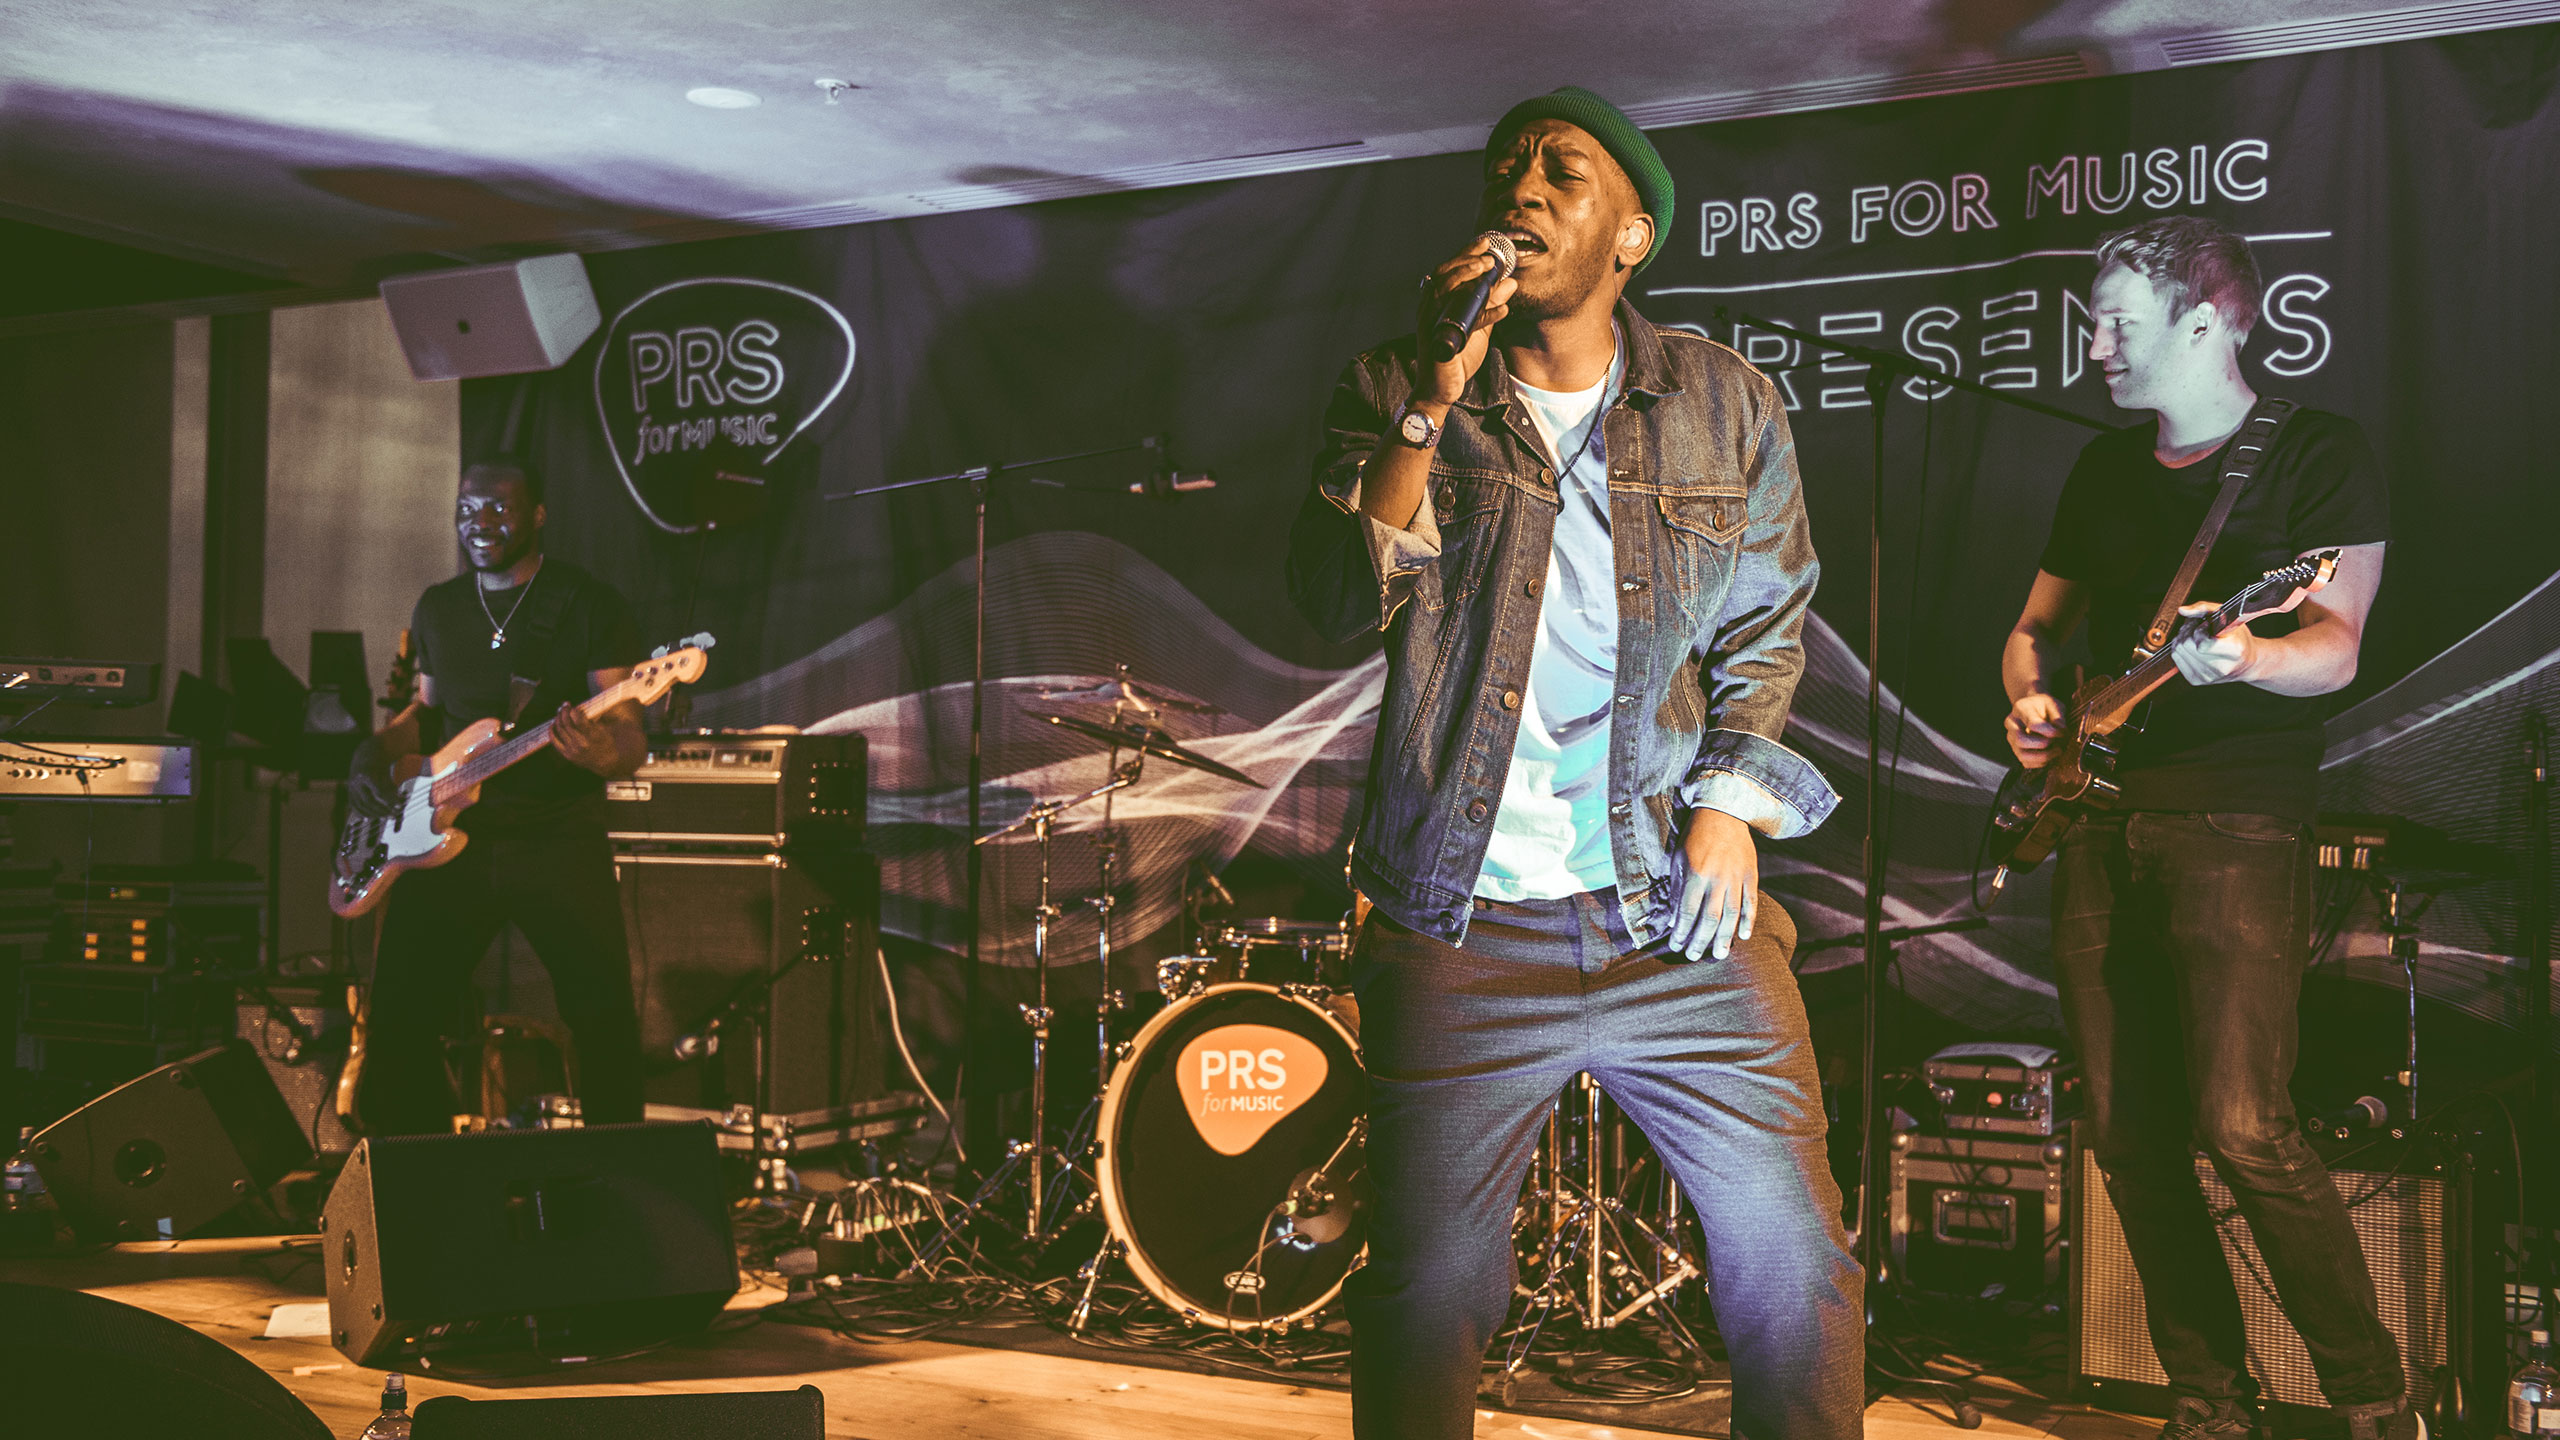 Tiggs Da Author performs with his live band at PRS Presents